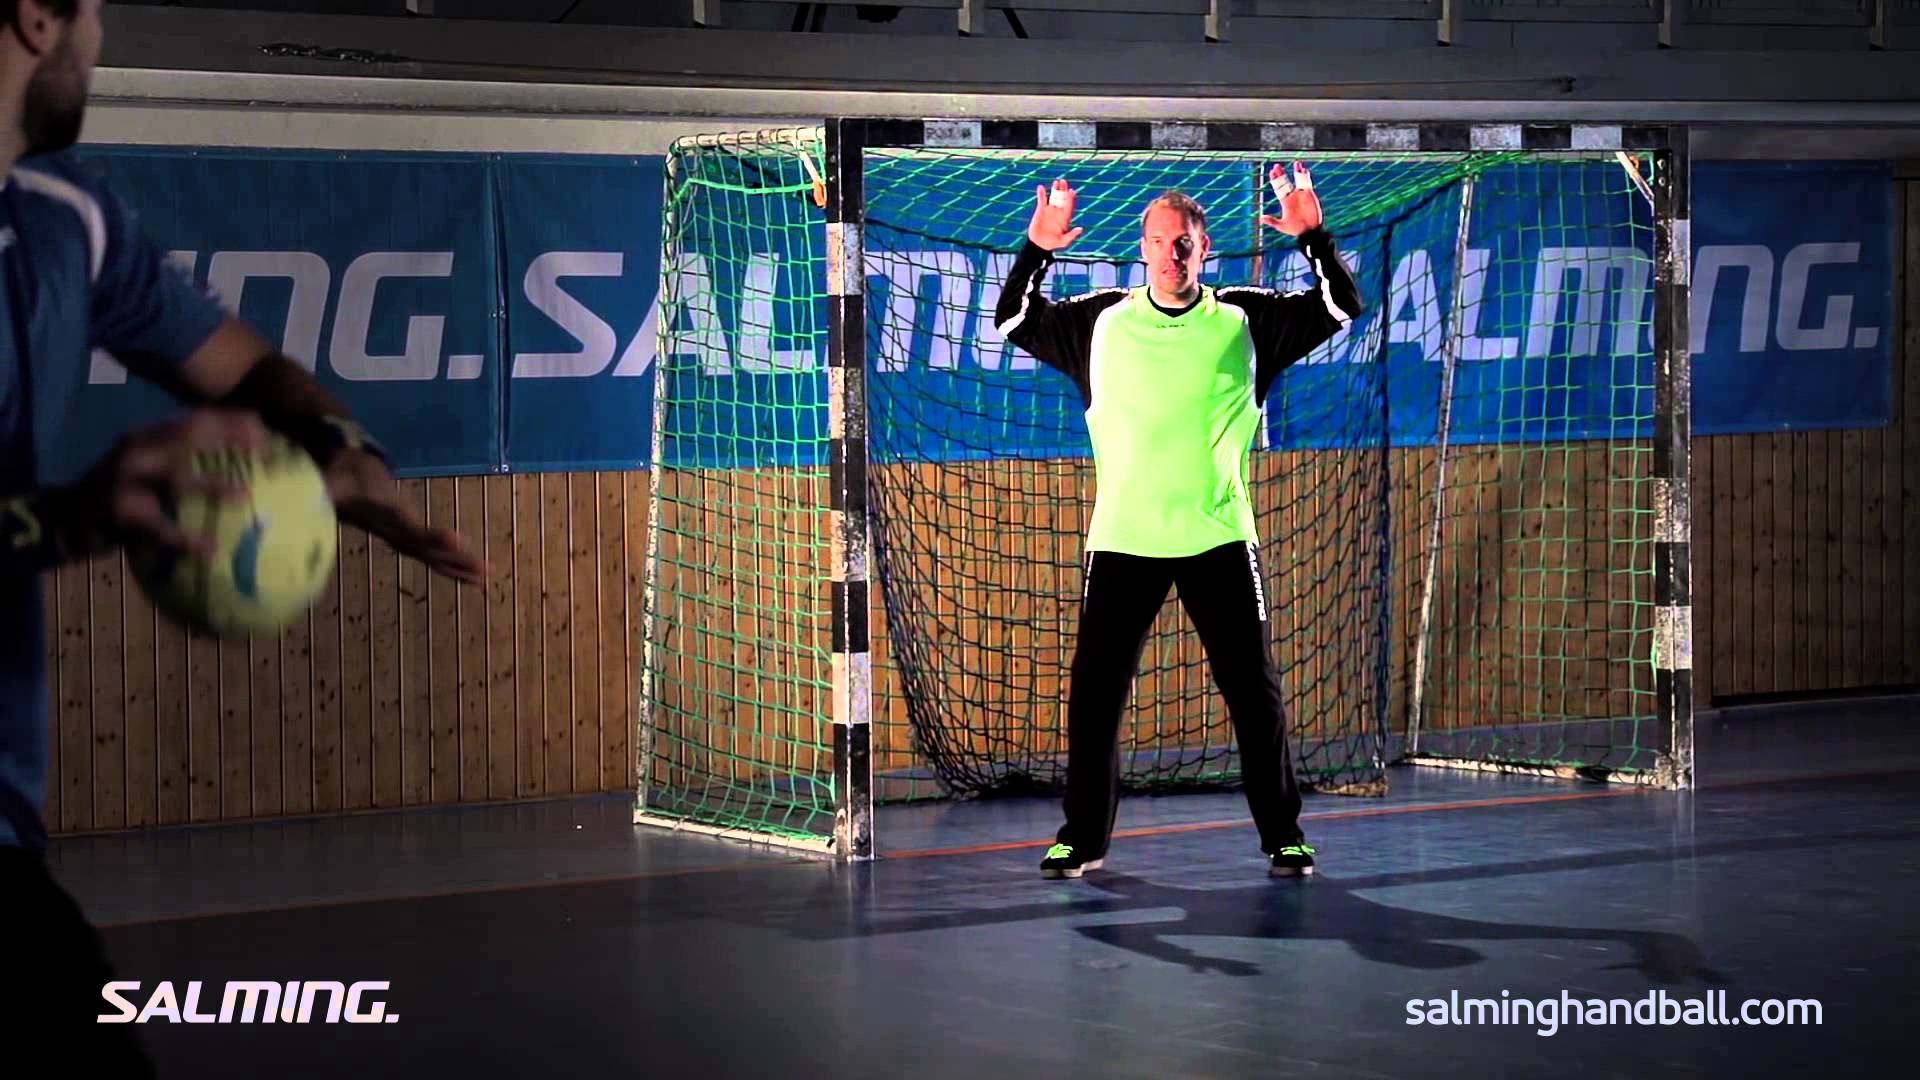 Salming Handball Academy - Goalie - Starting position arms - YouTube